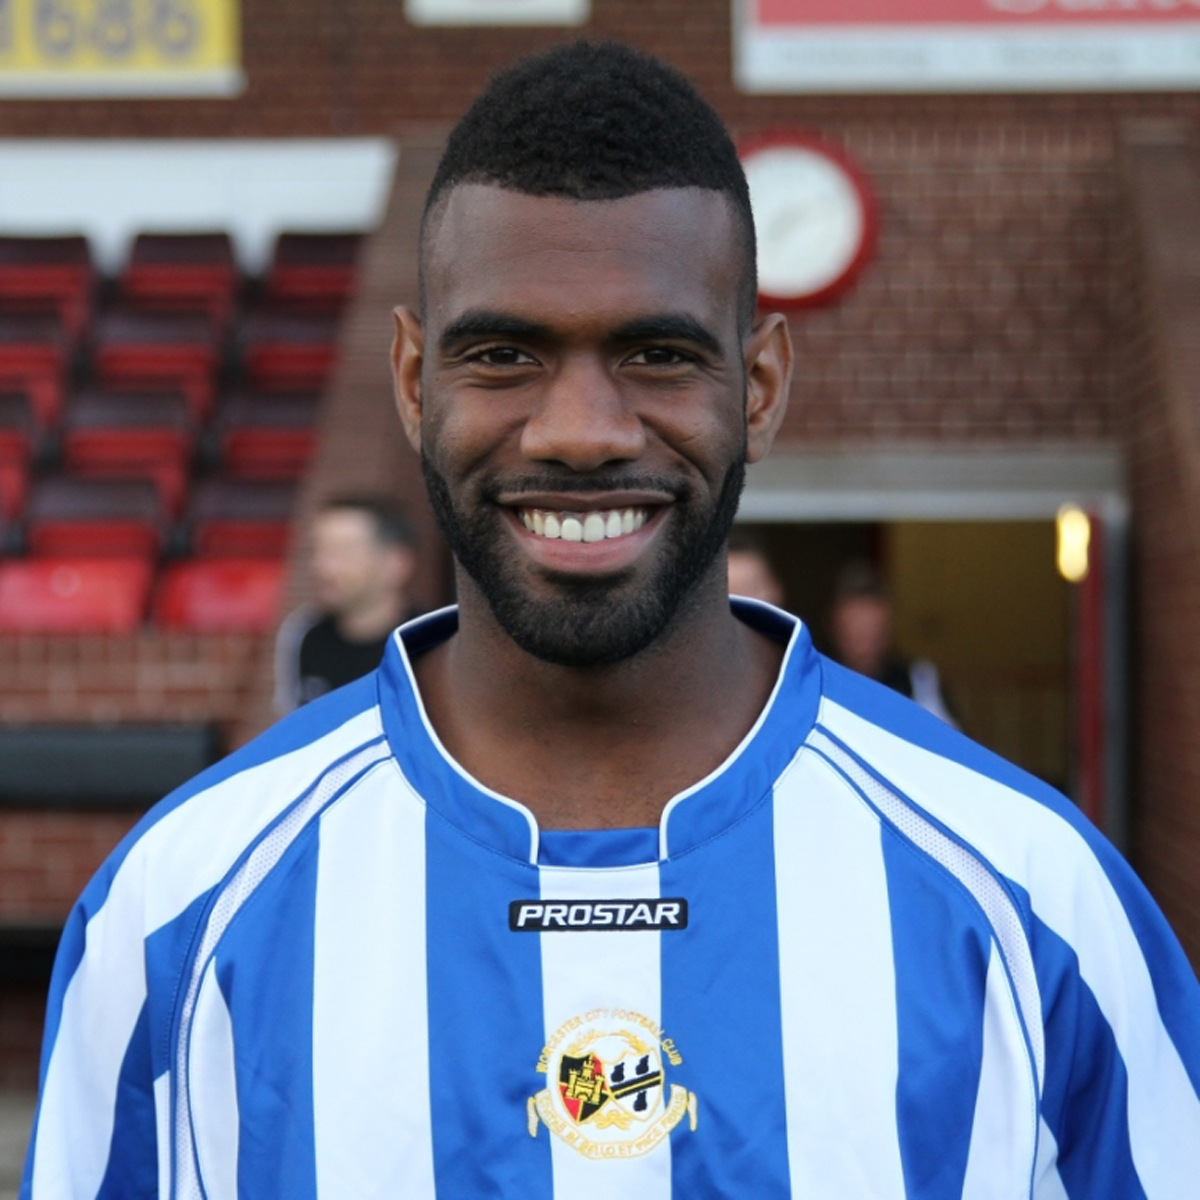 DOUBLE TROUBLE: Daniel Nti fired both goals as Worcester City grabbed a 2-1 win at Histon in Skrill North.